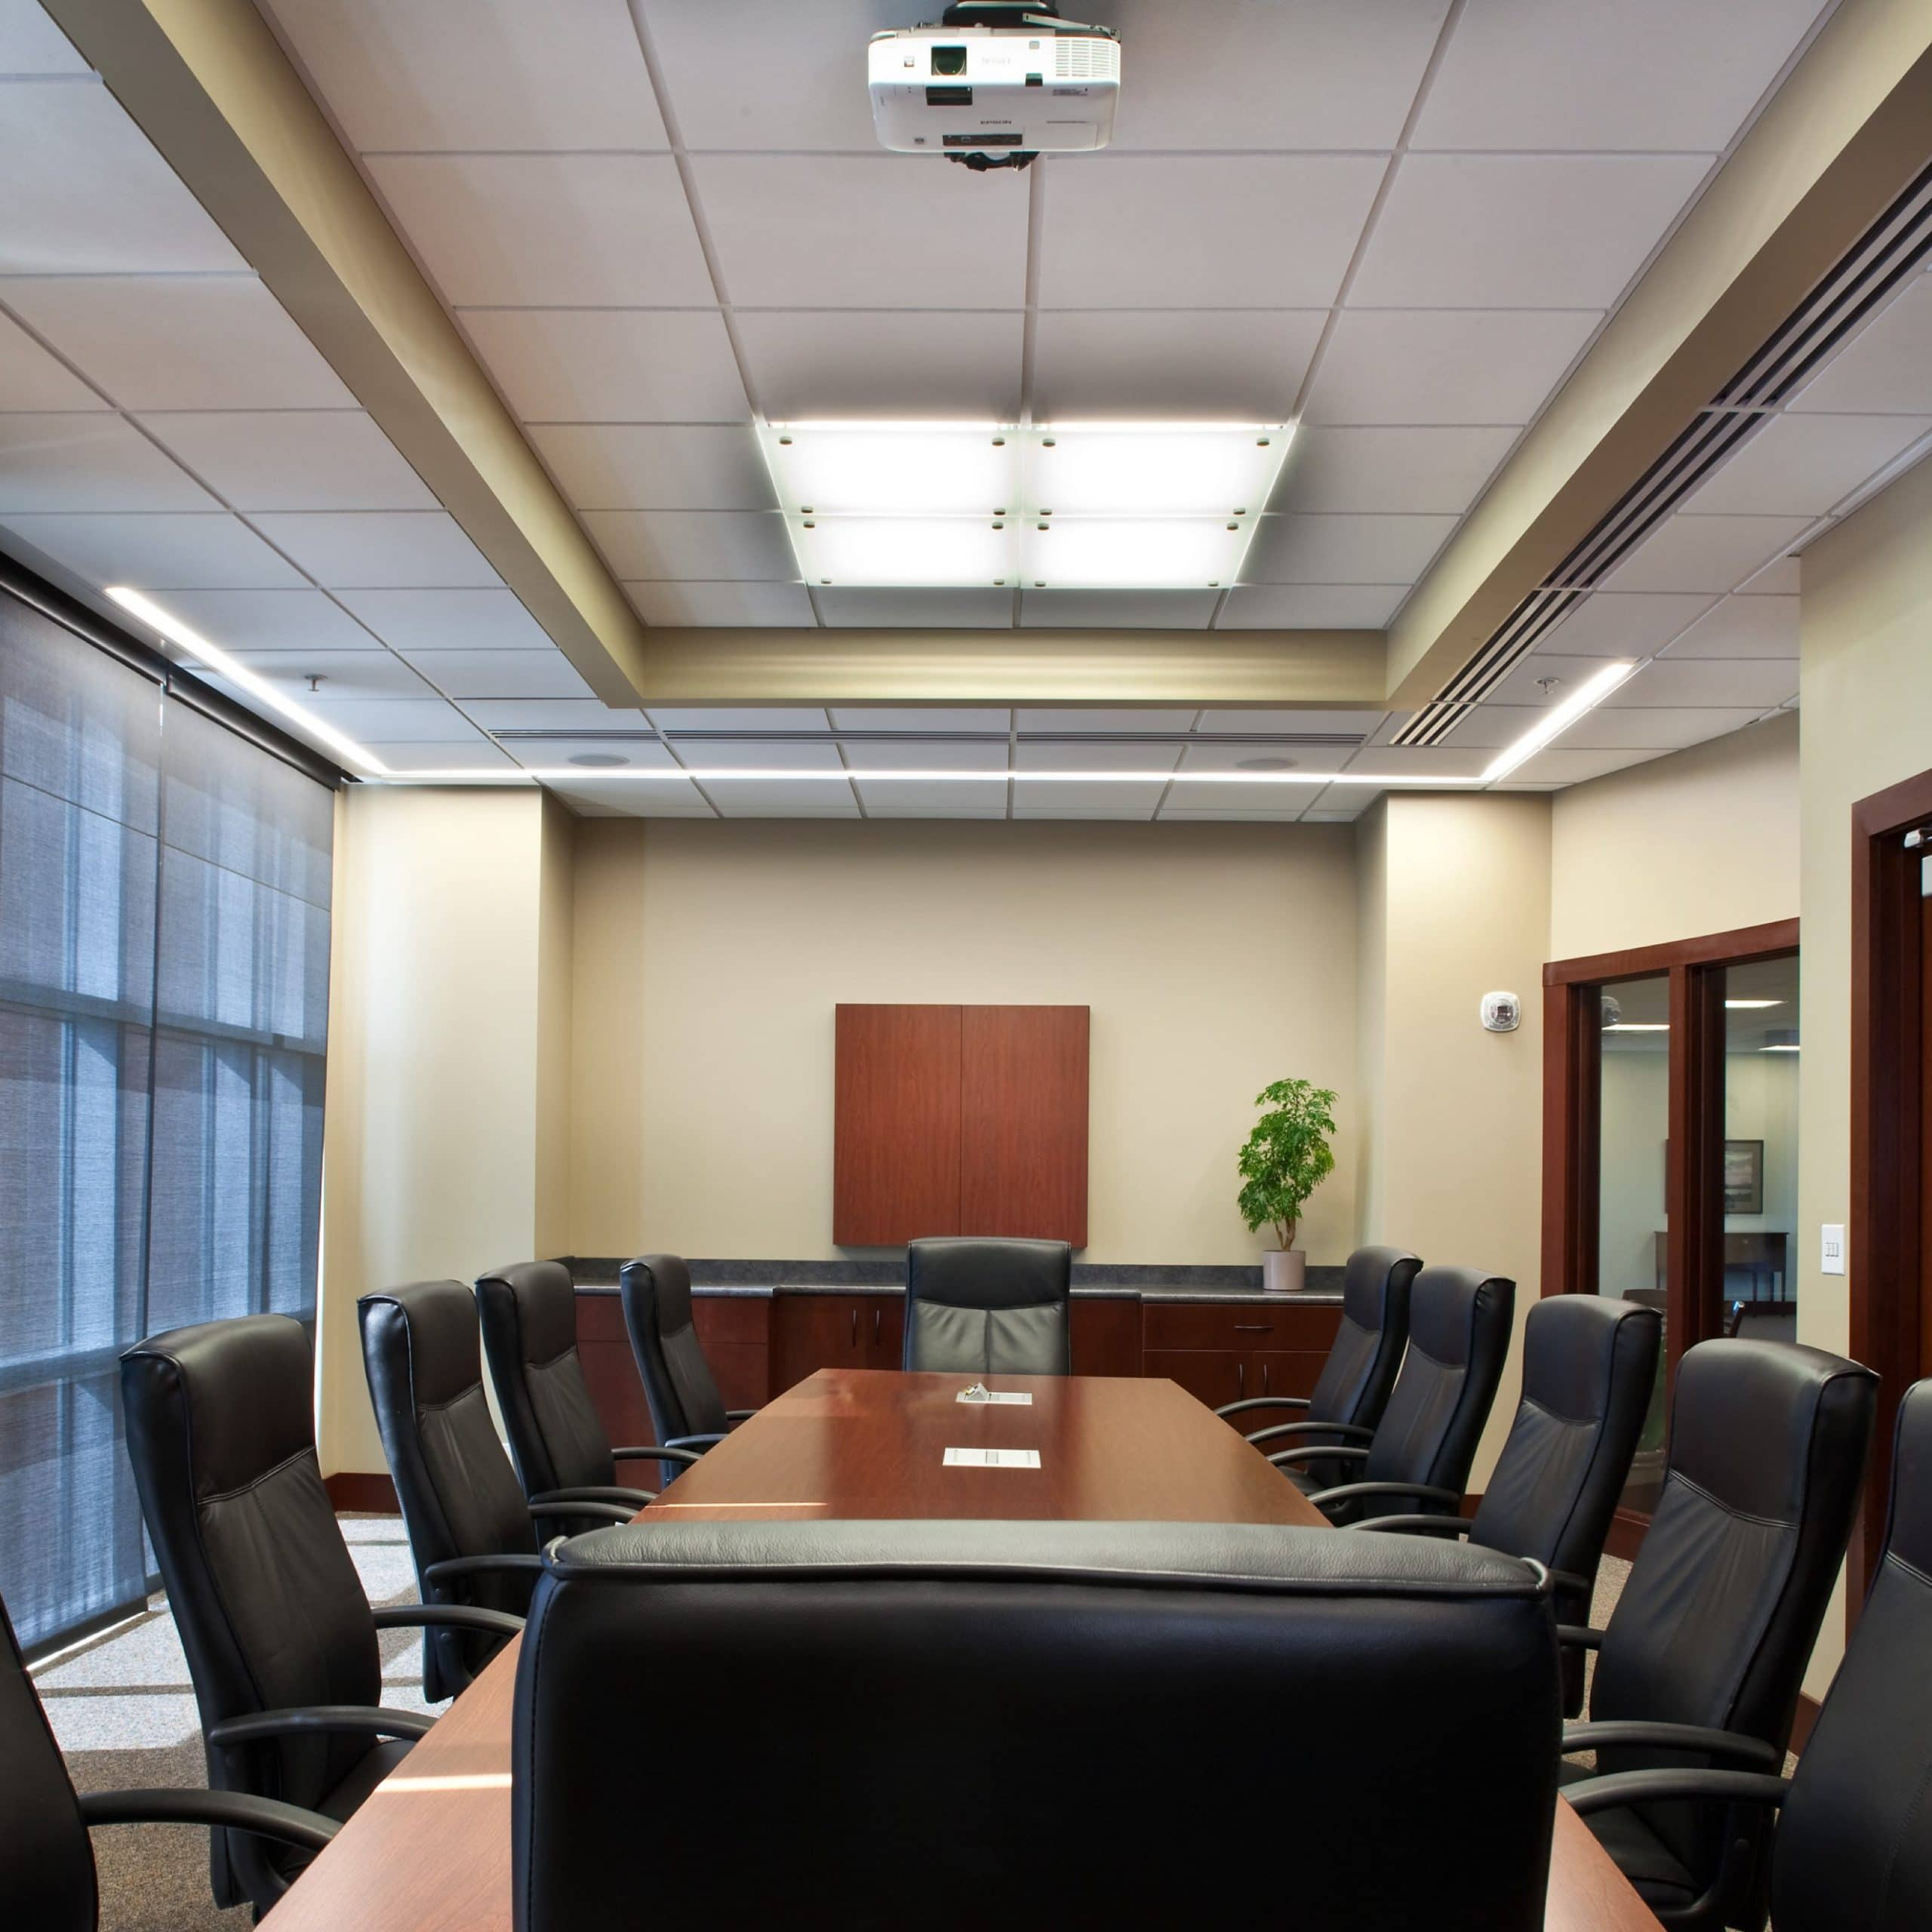 Conference room in Zions Bank Financial Center, architectural design by Elliott Workgroup